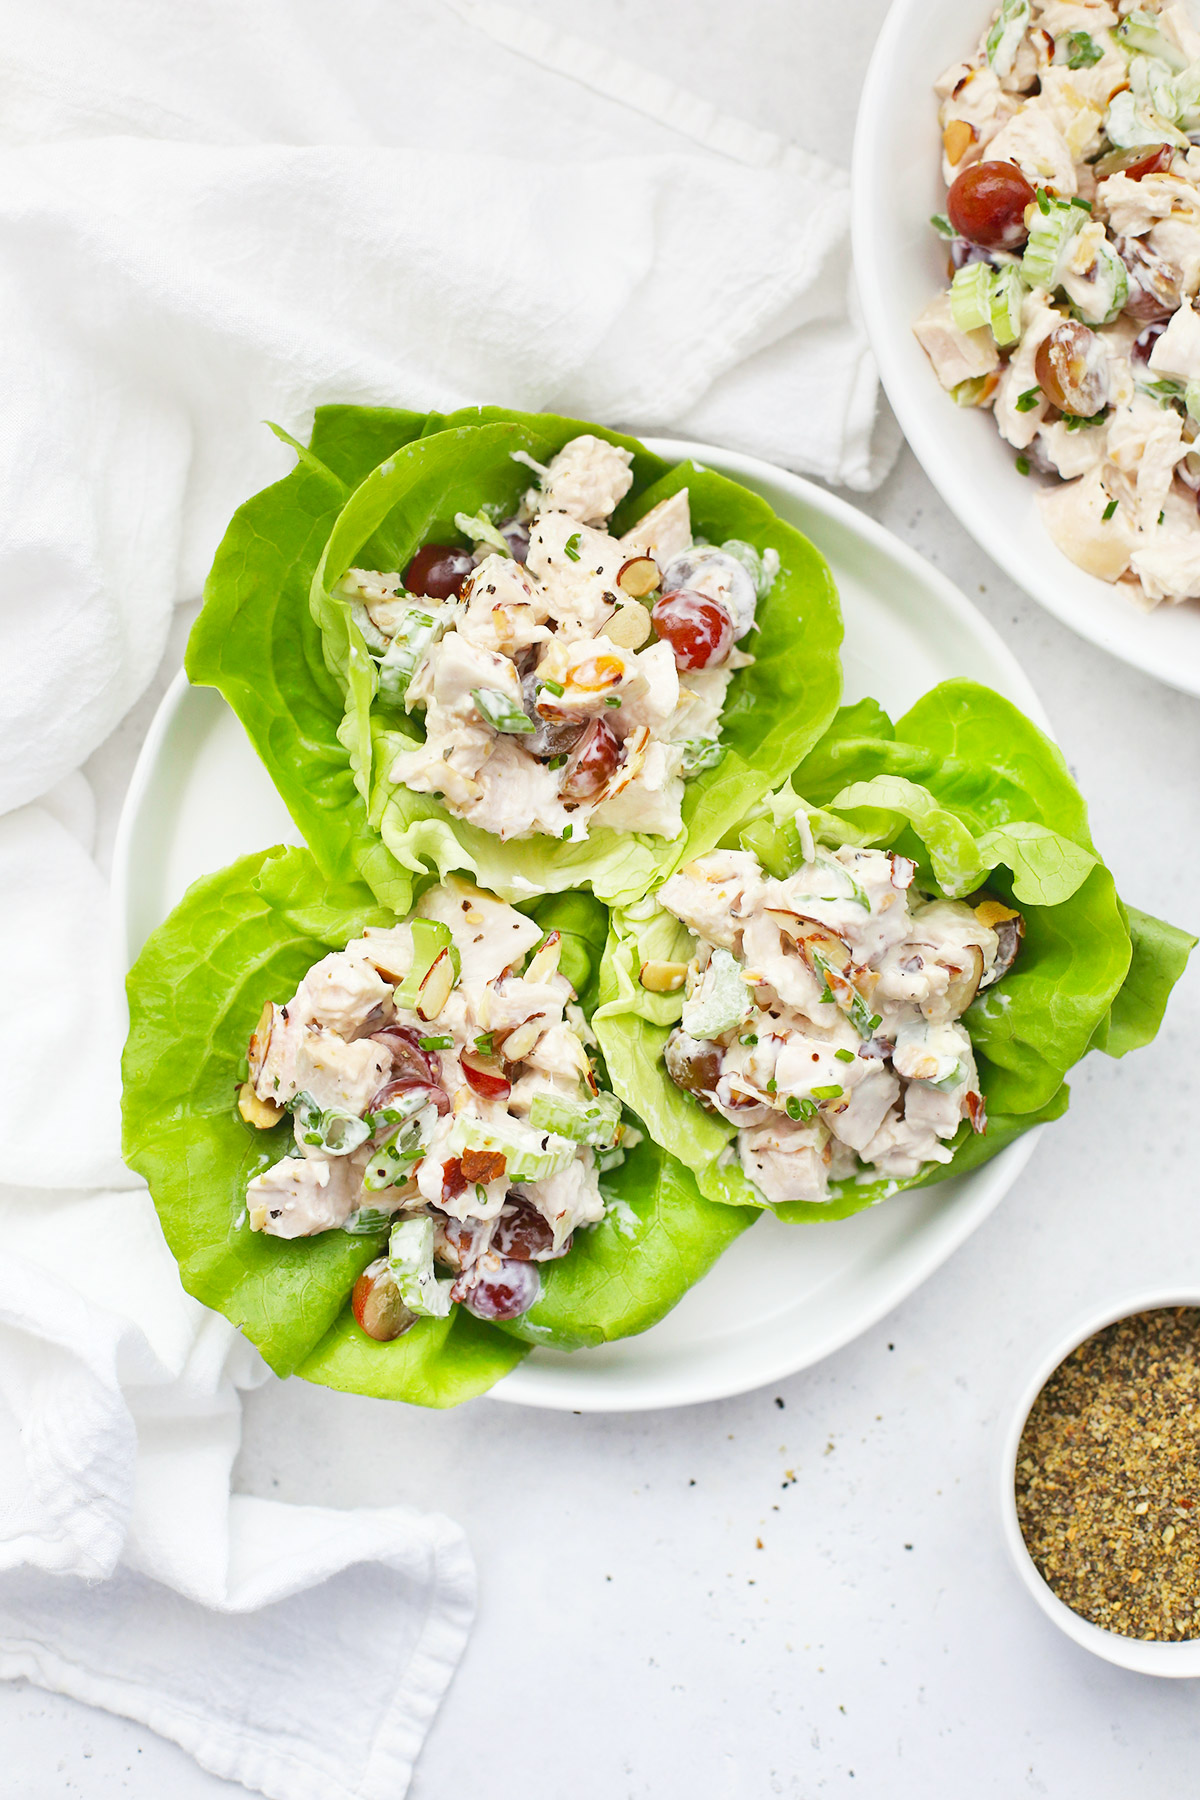 Three chicken salad lettuce wraps on a plate.